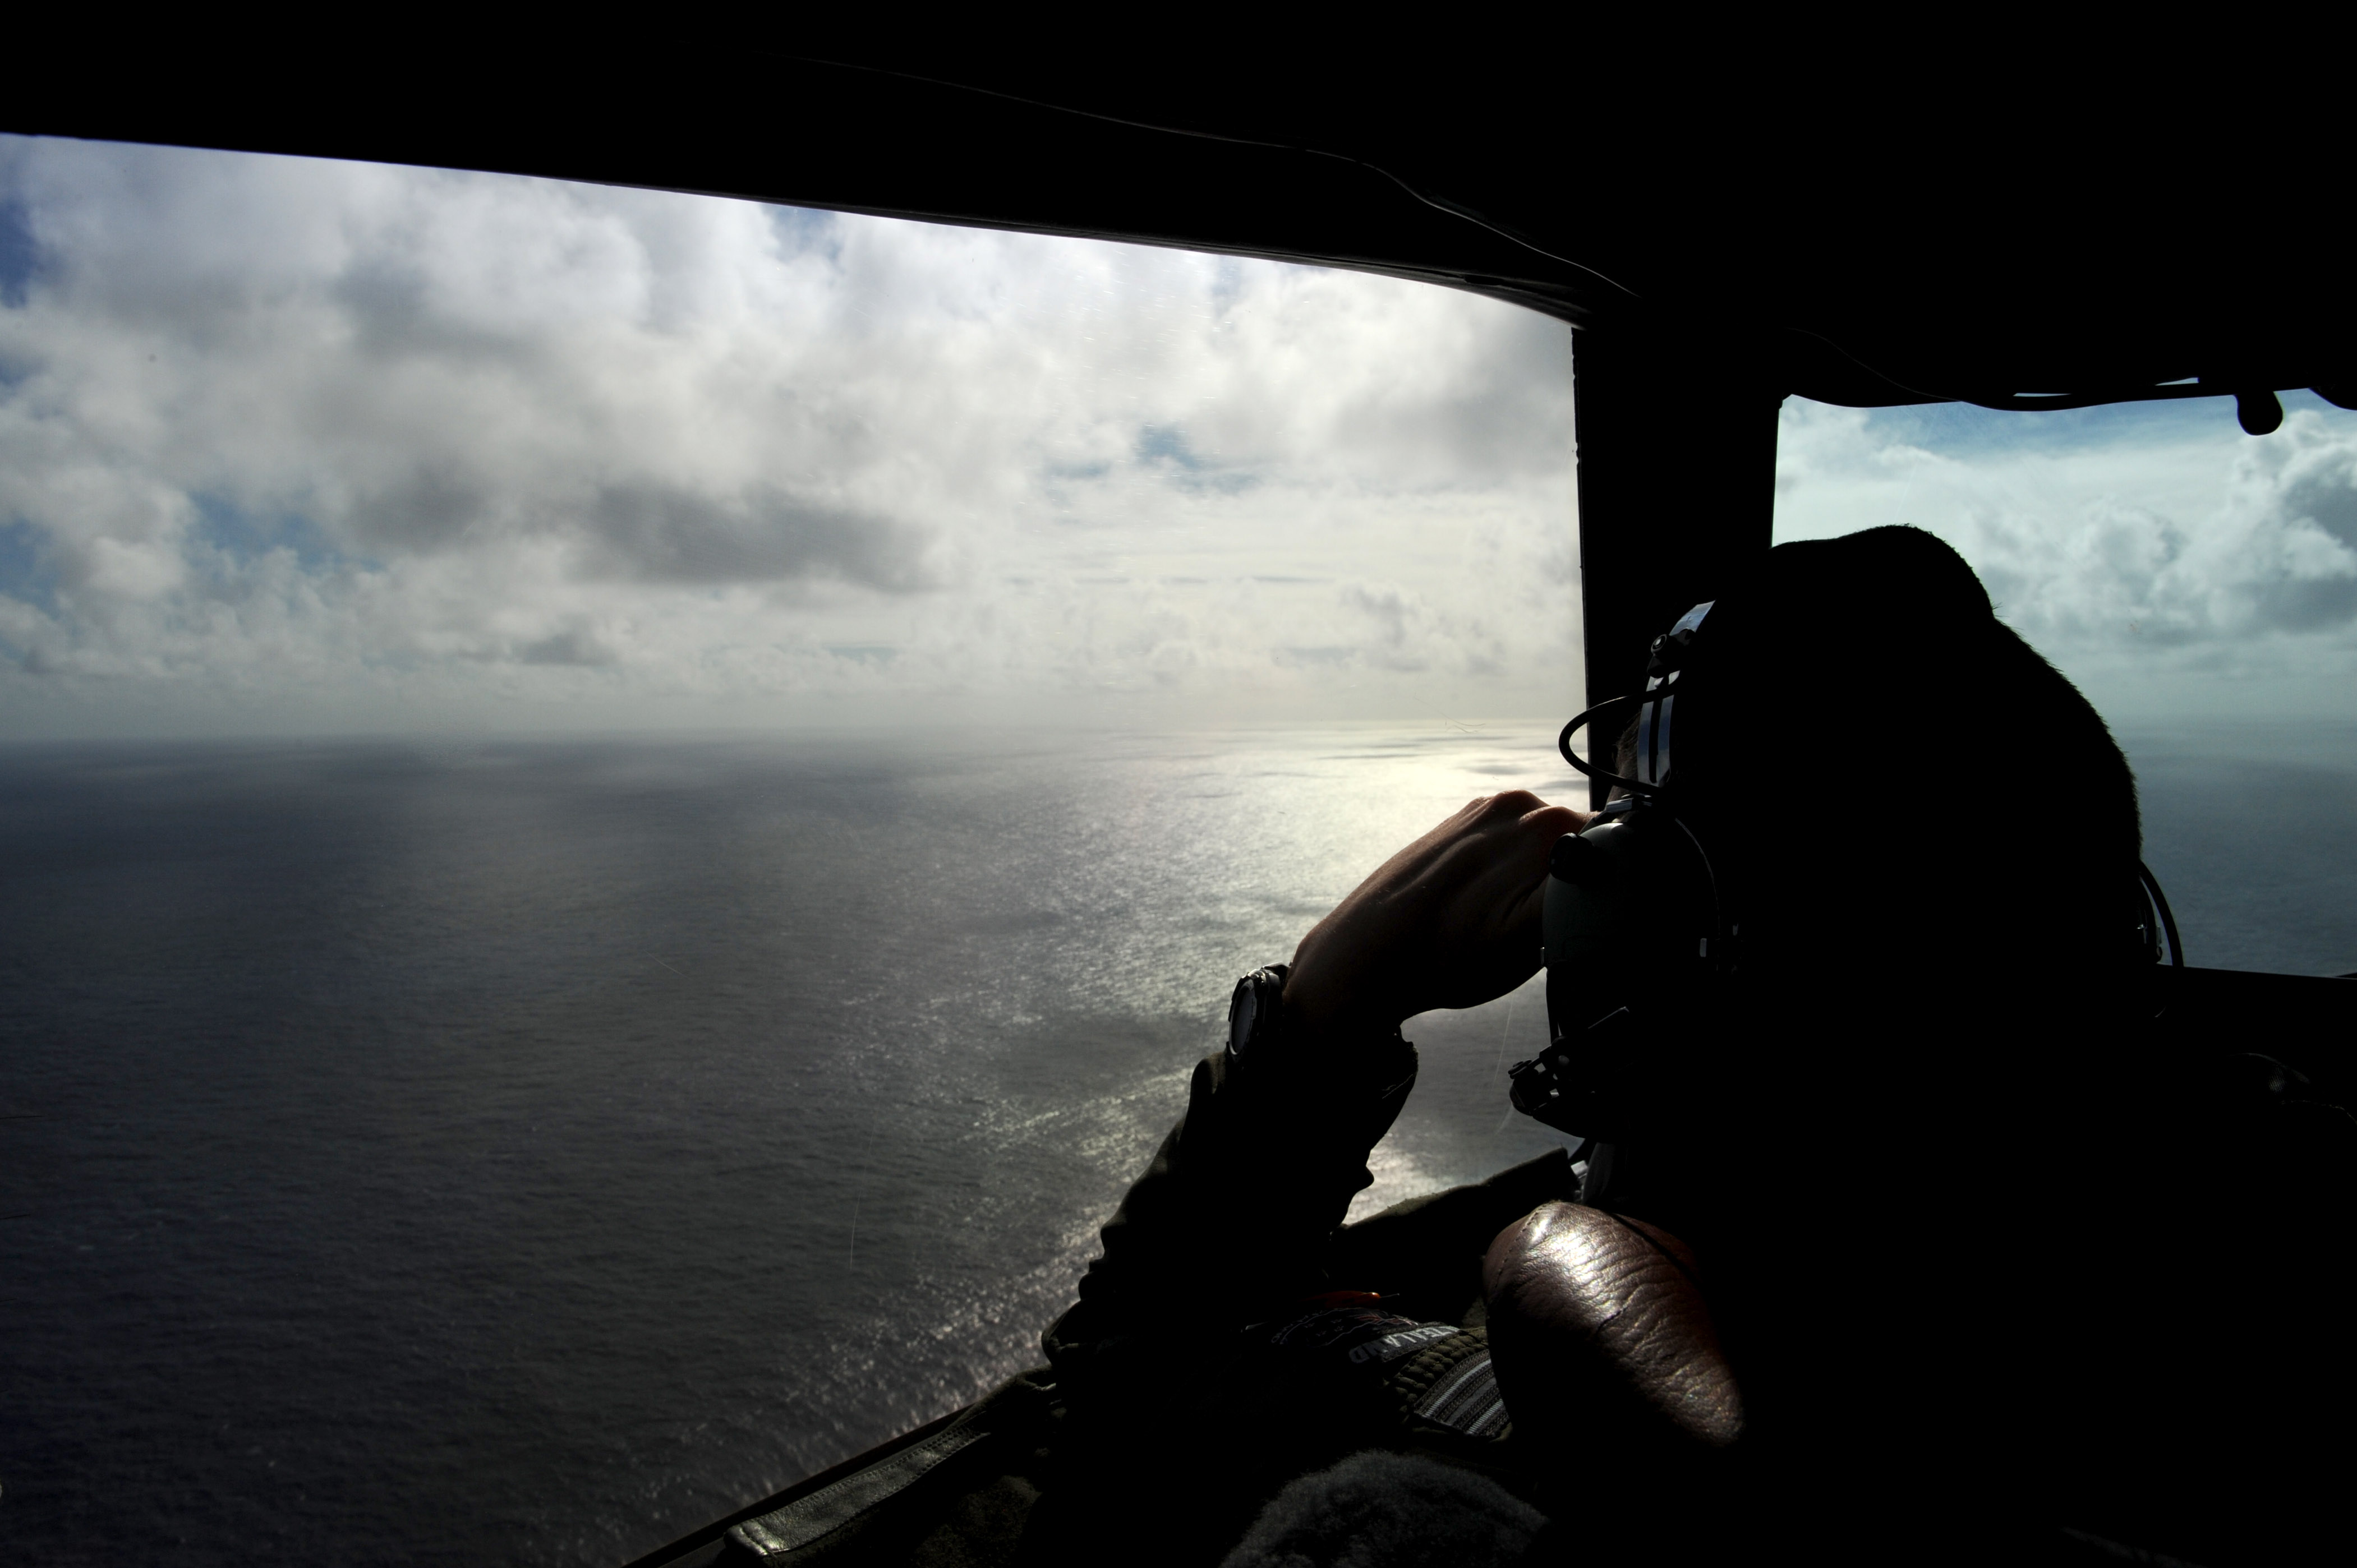 Flight Lieutenant Timothy McAlevey of the Royal New Zealand Airforce helps look for objects during the search for missing Malaysia Airlines Flight MH 370 off the coast of Perth, Australia on April 13, 2014.